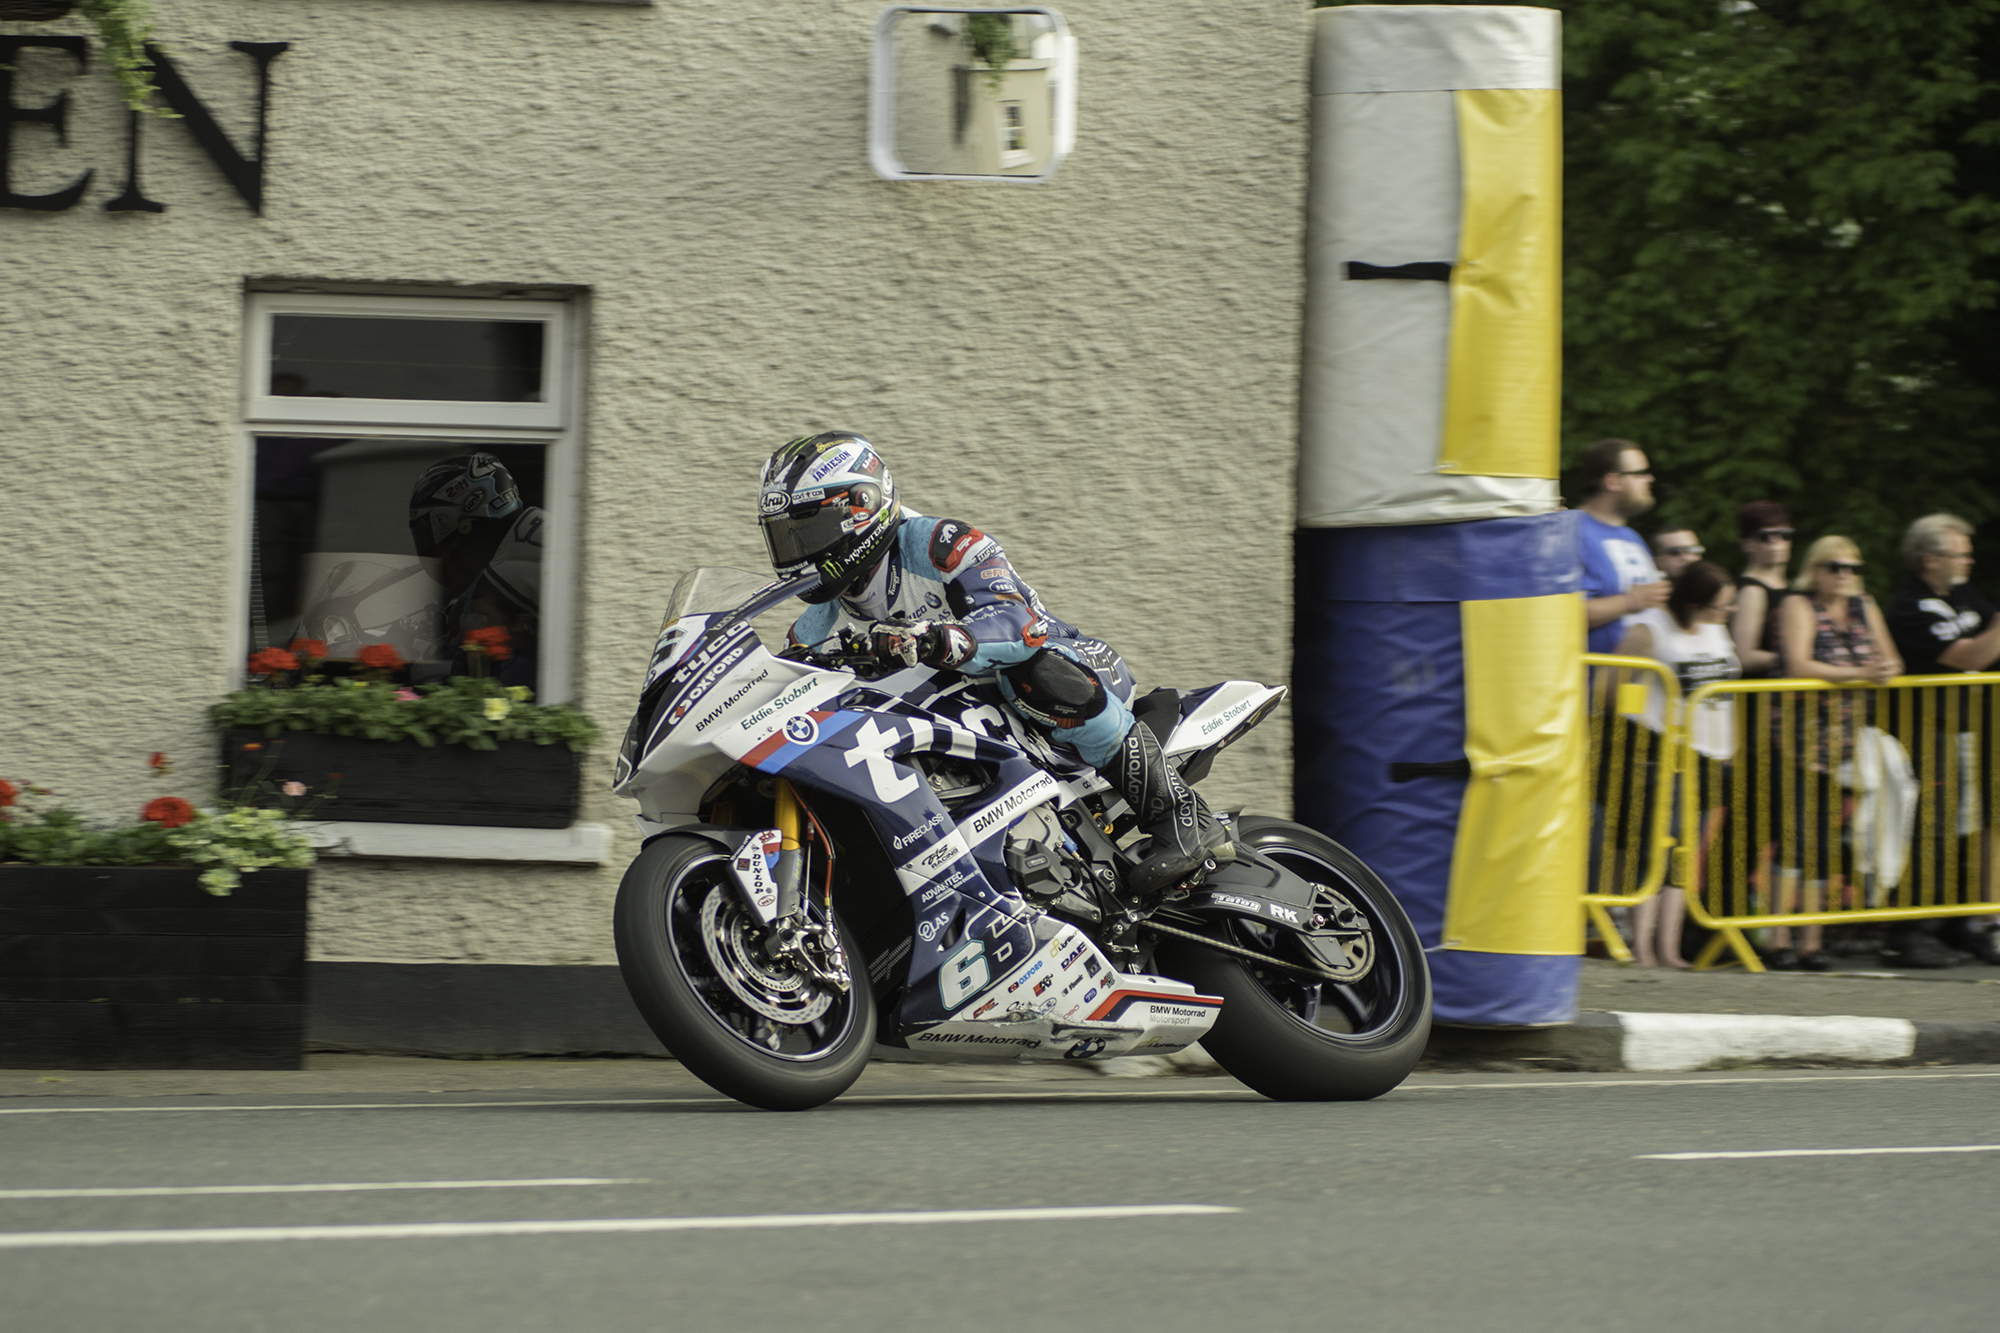 TT 2018: Near 133 Mph Lap Takes Tyco BMW's Dunlop To Top Of Friday's Time Sheets